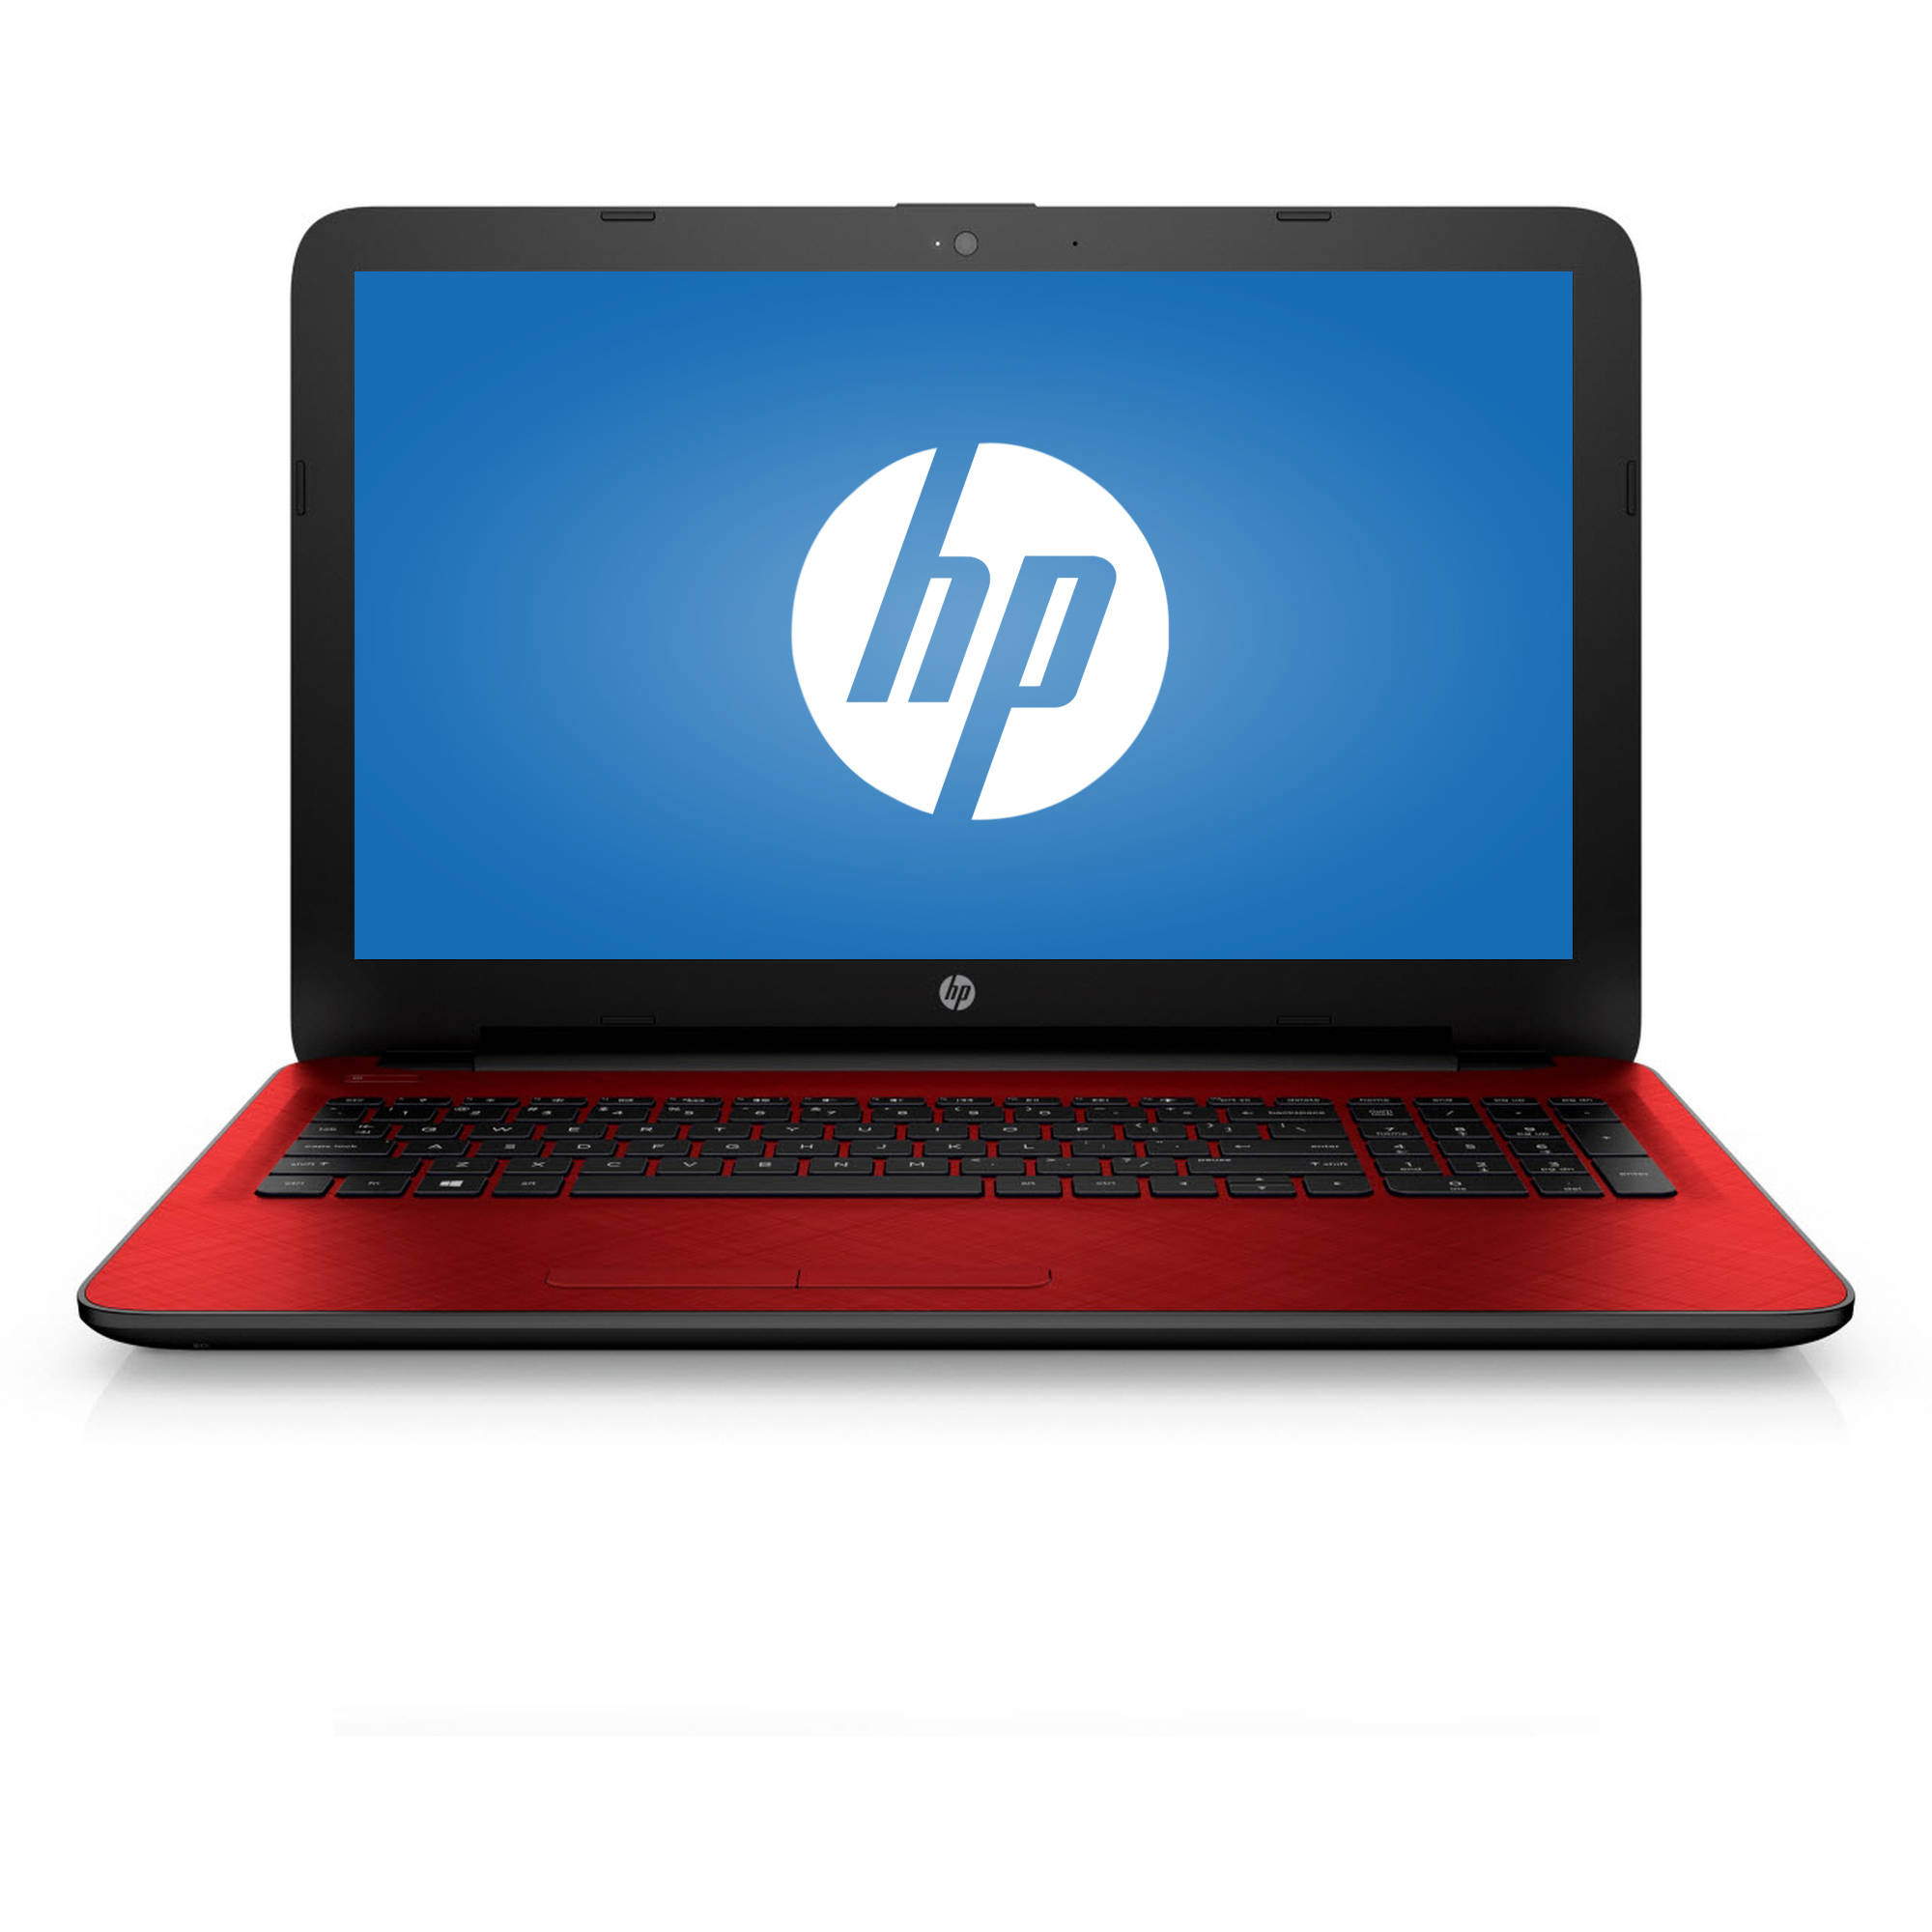 HP 15 - ac140ds 15.6 Laptop, Touchscreen, Windows 10 Home, Intel Celeron N3150 Processor, 4GB RAM, 1TB Hard Drive Refurbished